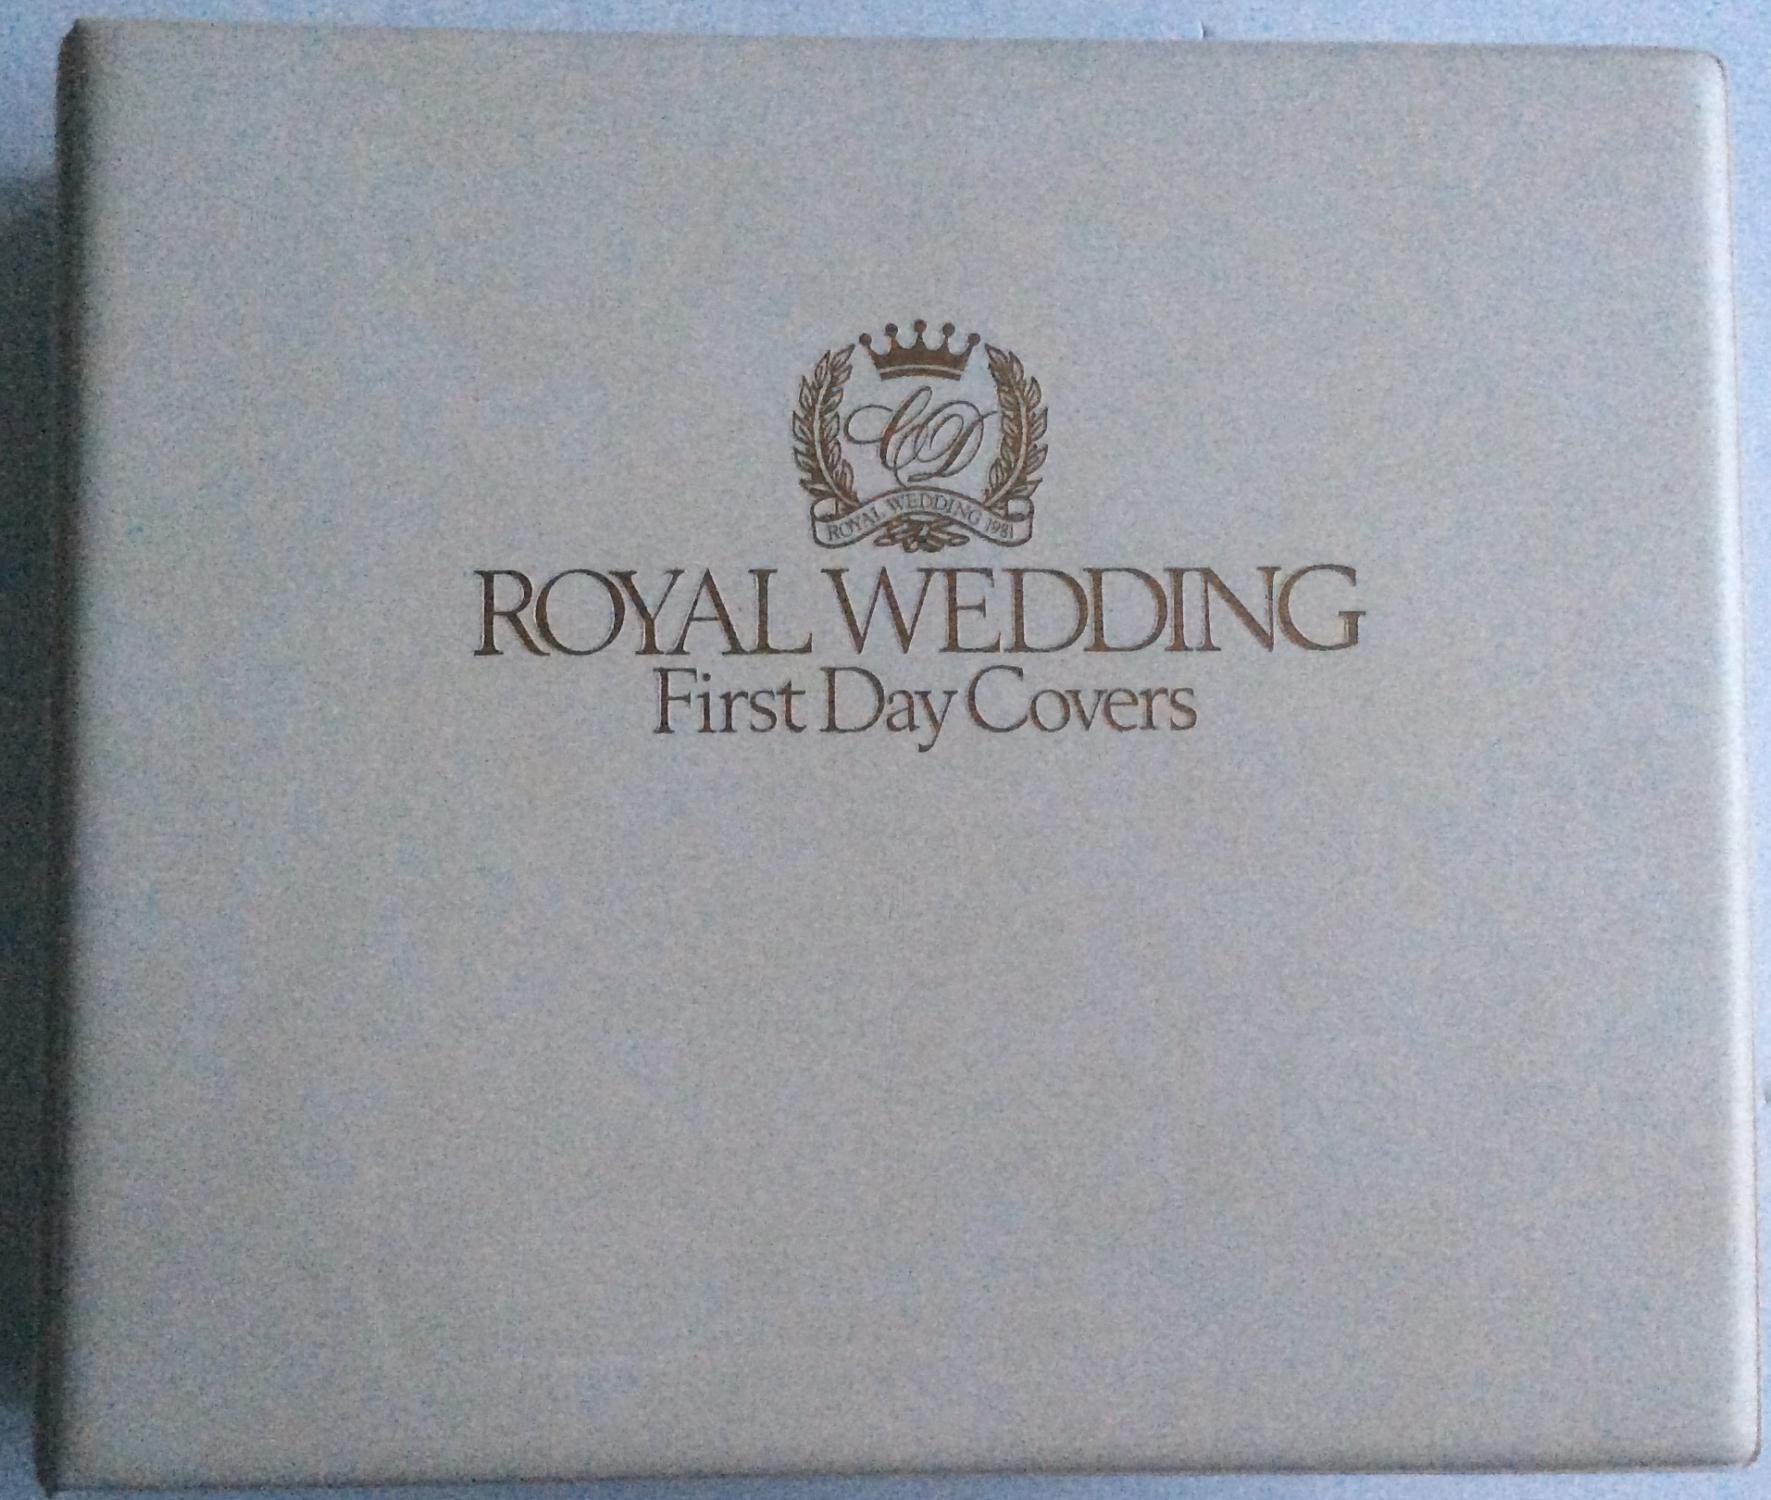 ROYAL_WEDDING_FIRST_DAY_COVERS_THE_SUMNER_COLLECTION_104_COVERS___[As_New]_[Hardcover]